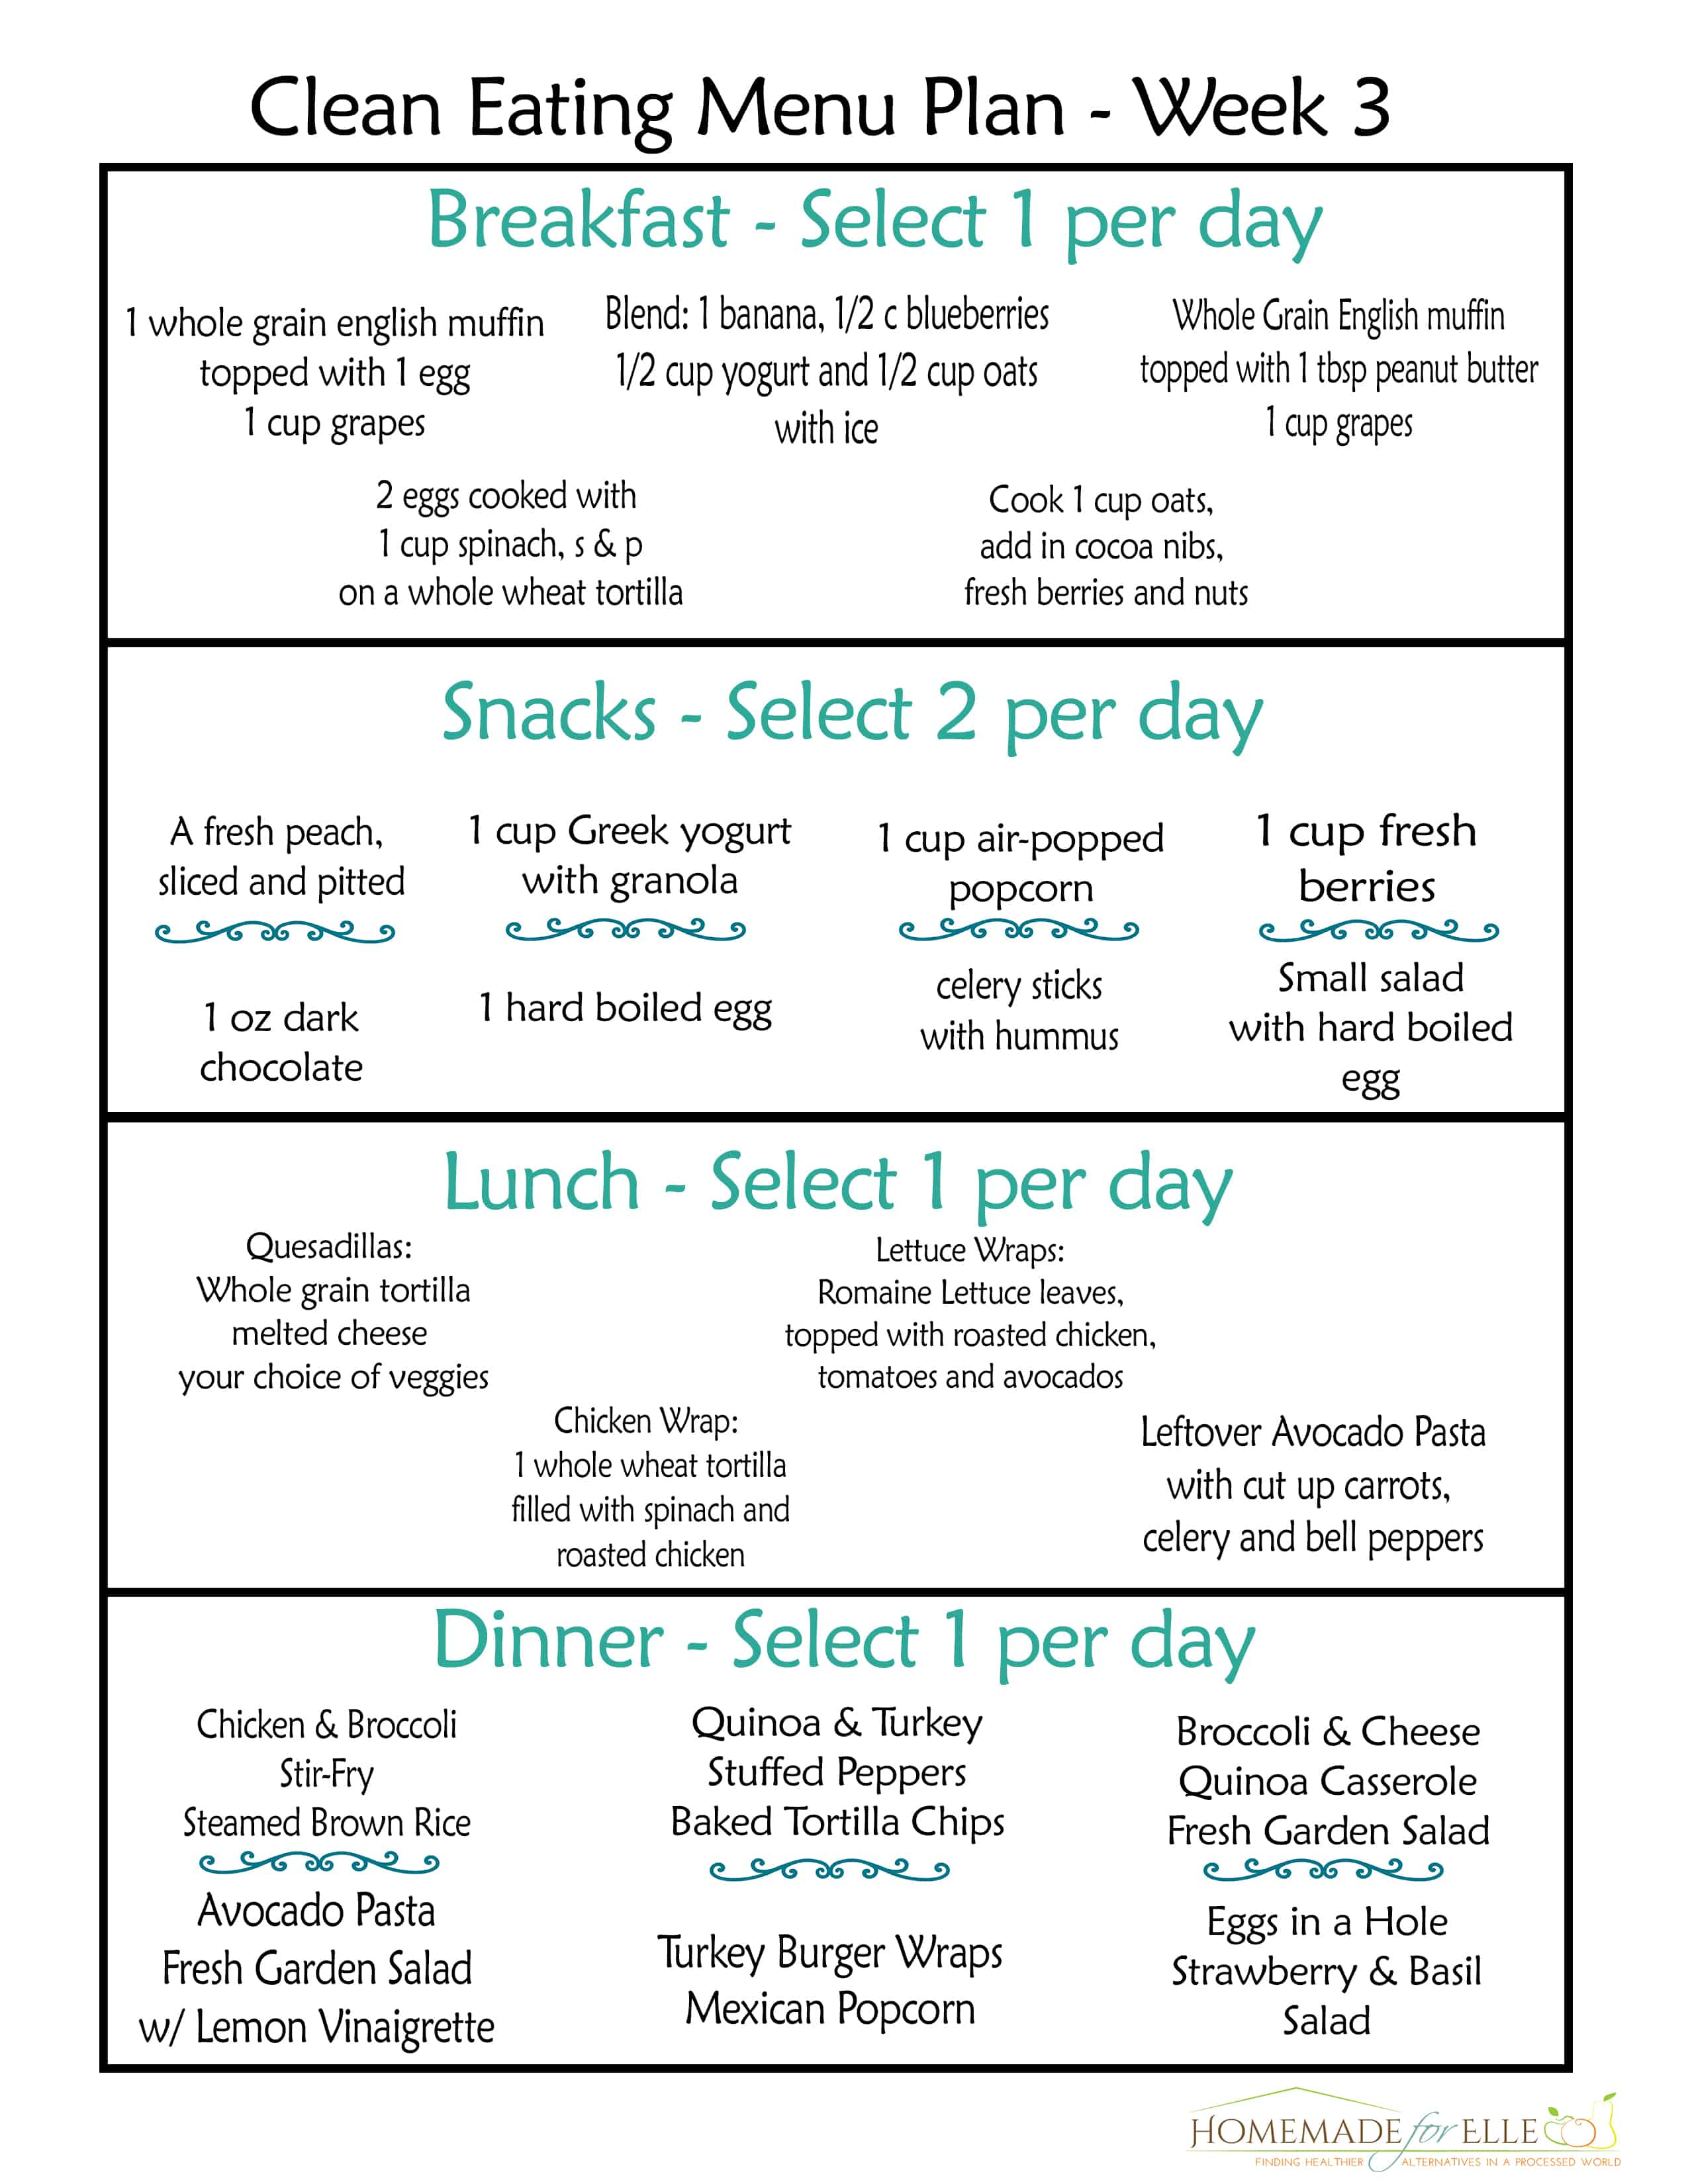 Clean Eating Meal Plan With Recipes Your Family Will